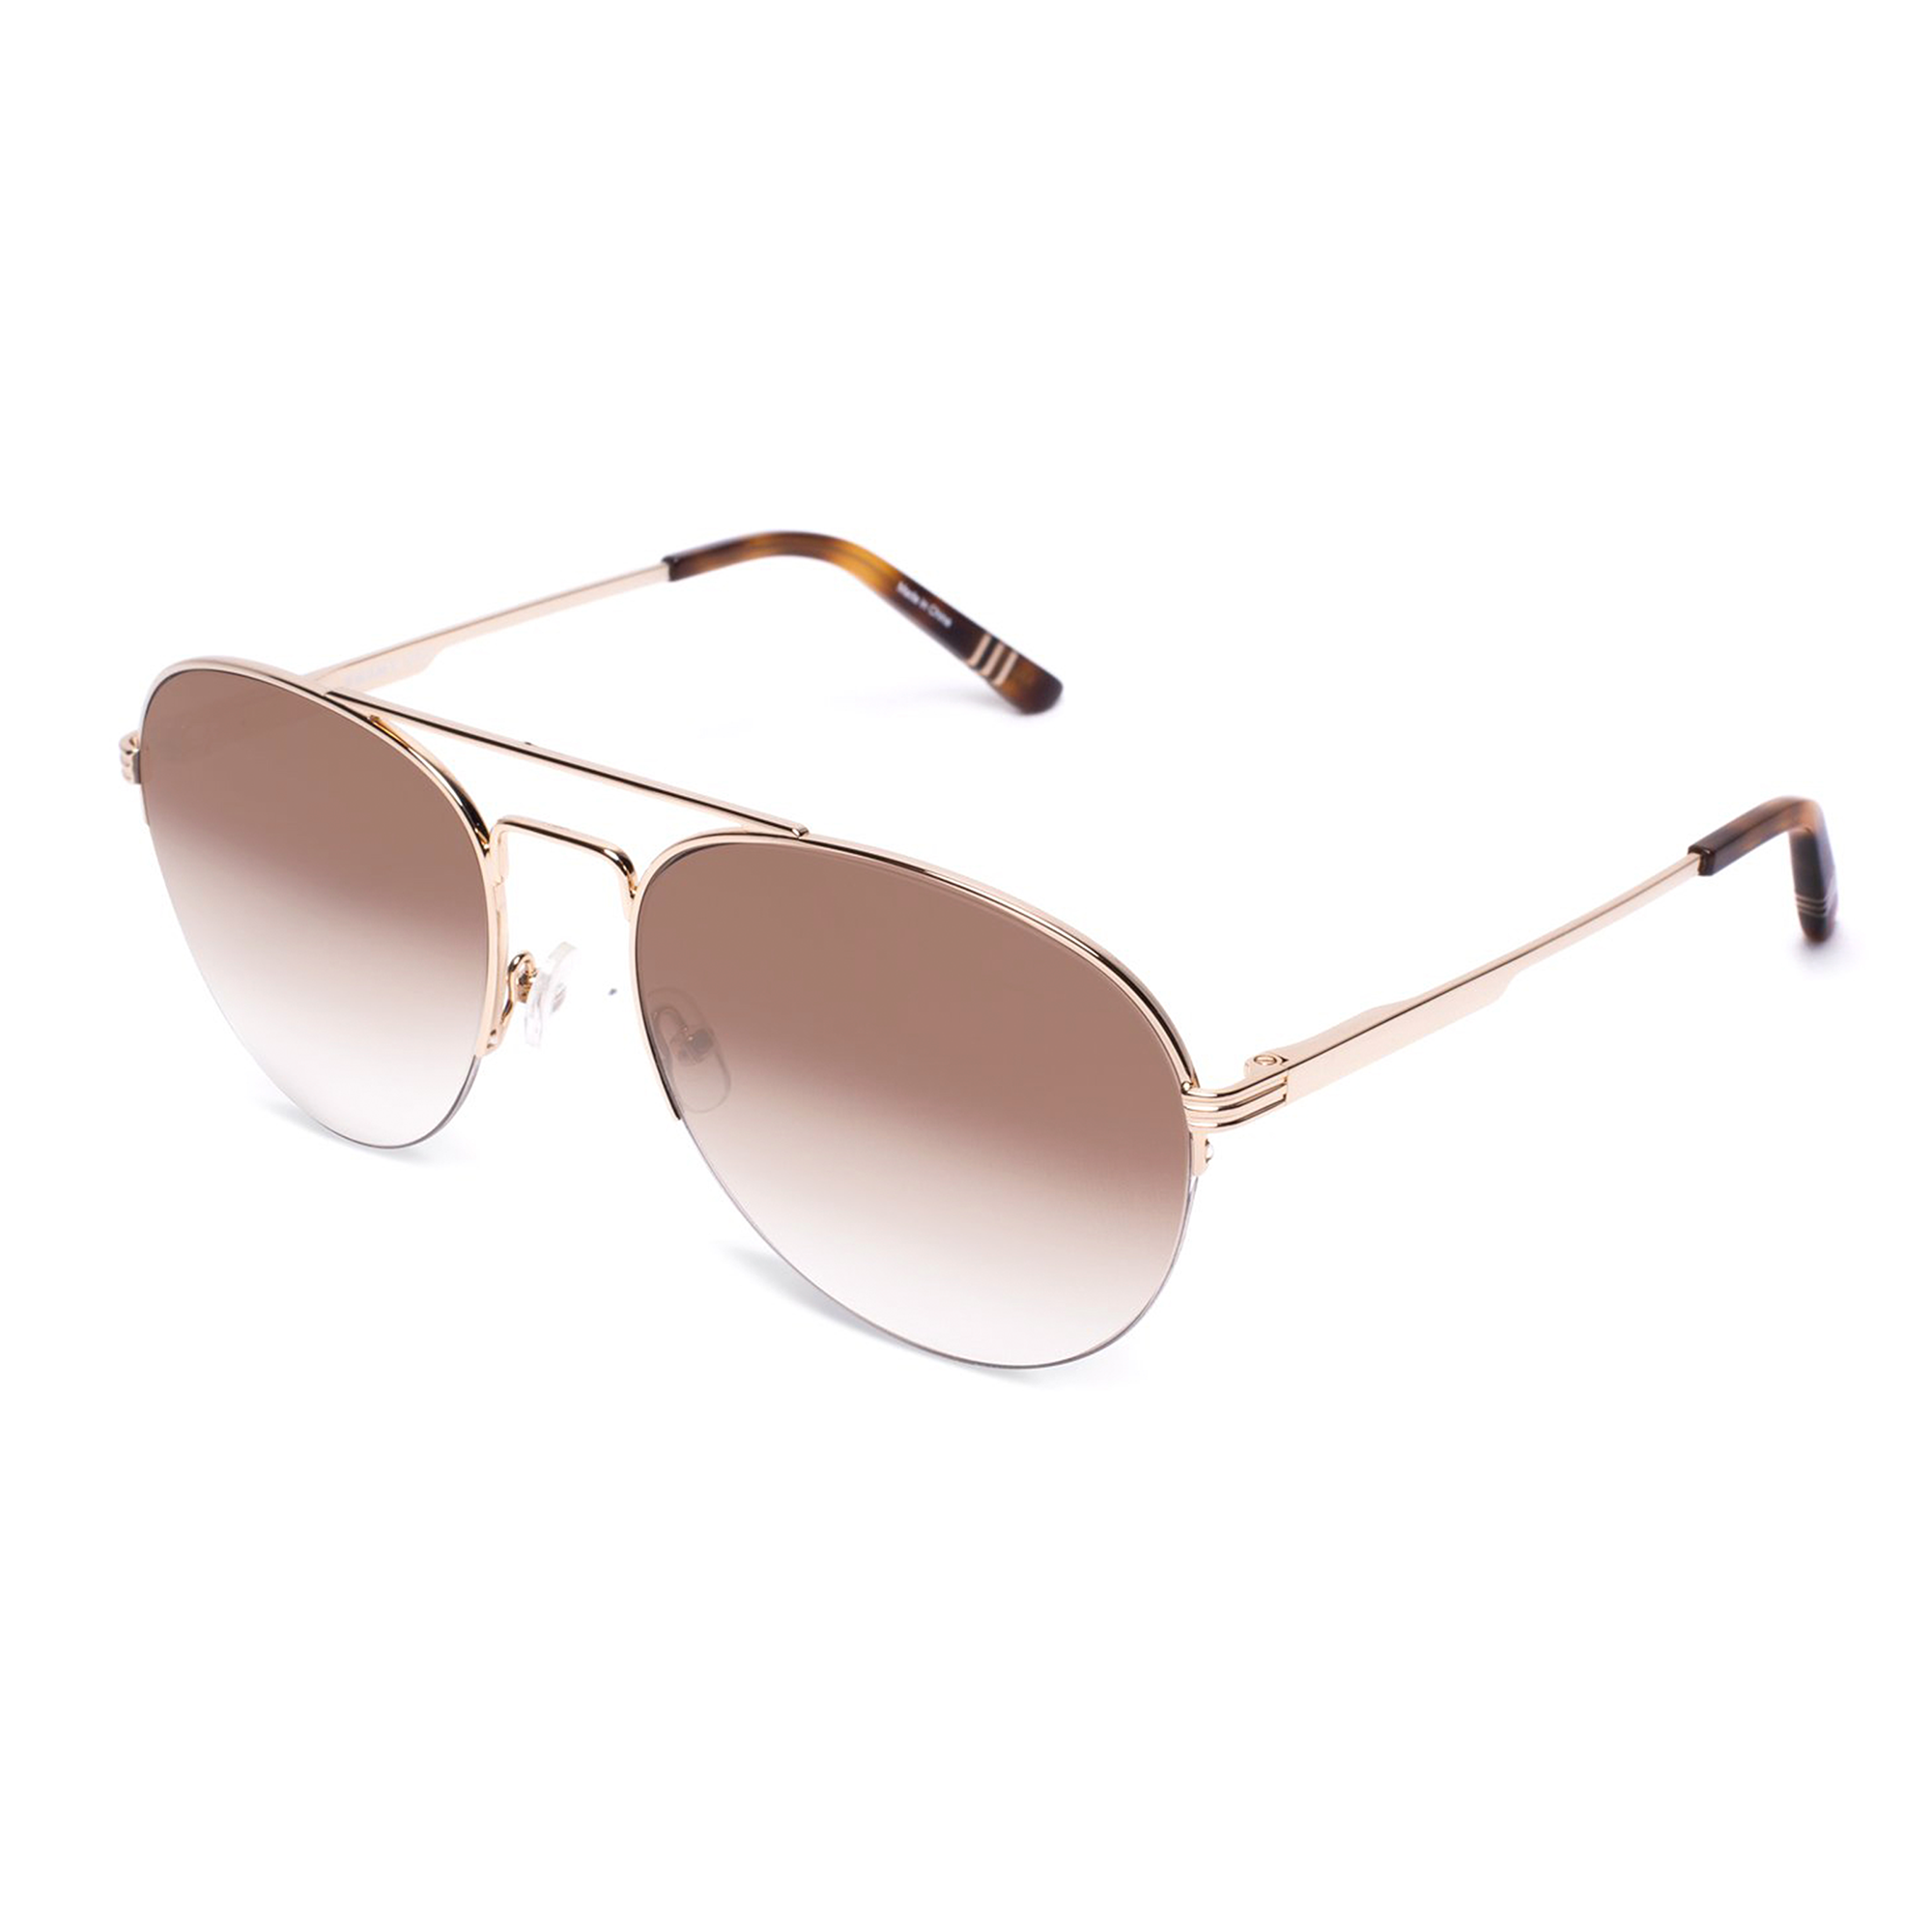 gold-frames-with-brown-gradient-lenses-and-tortoise-acetate-temple-tips